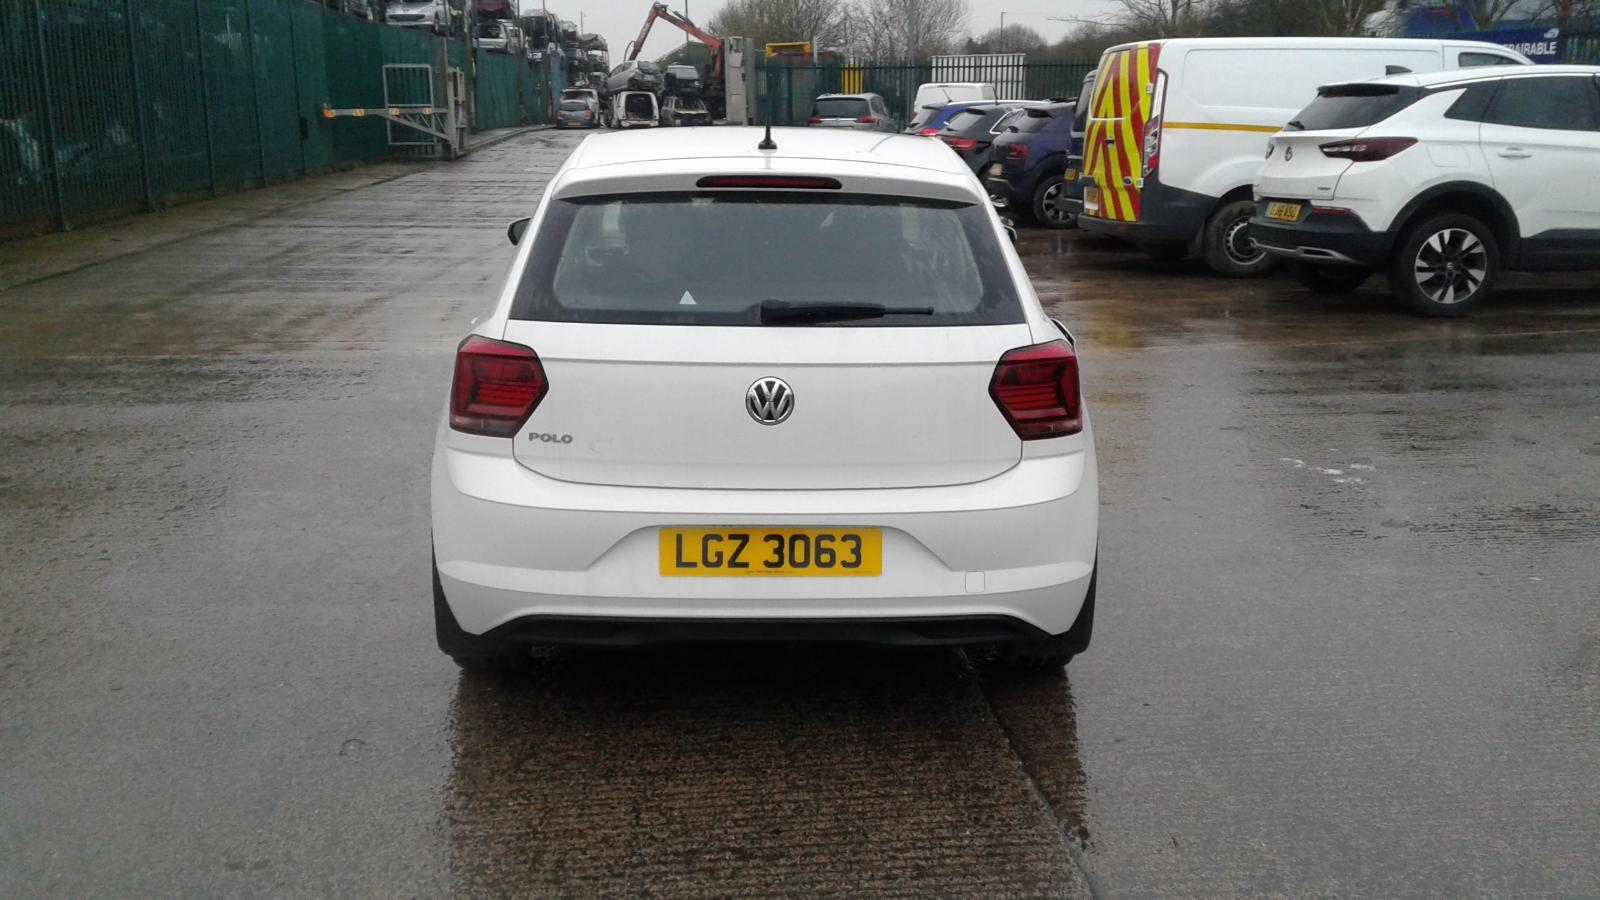 2018 VOLKSWAGEN POLO FOR SALE £3750 ONO Image